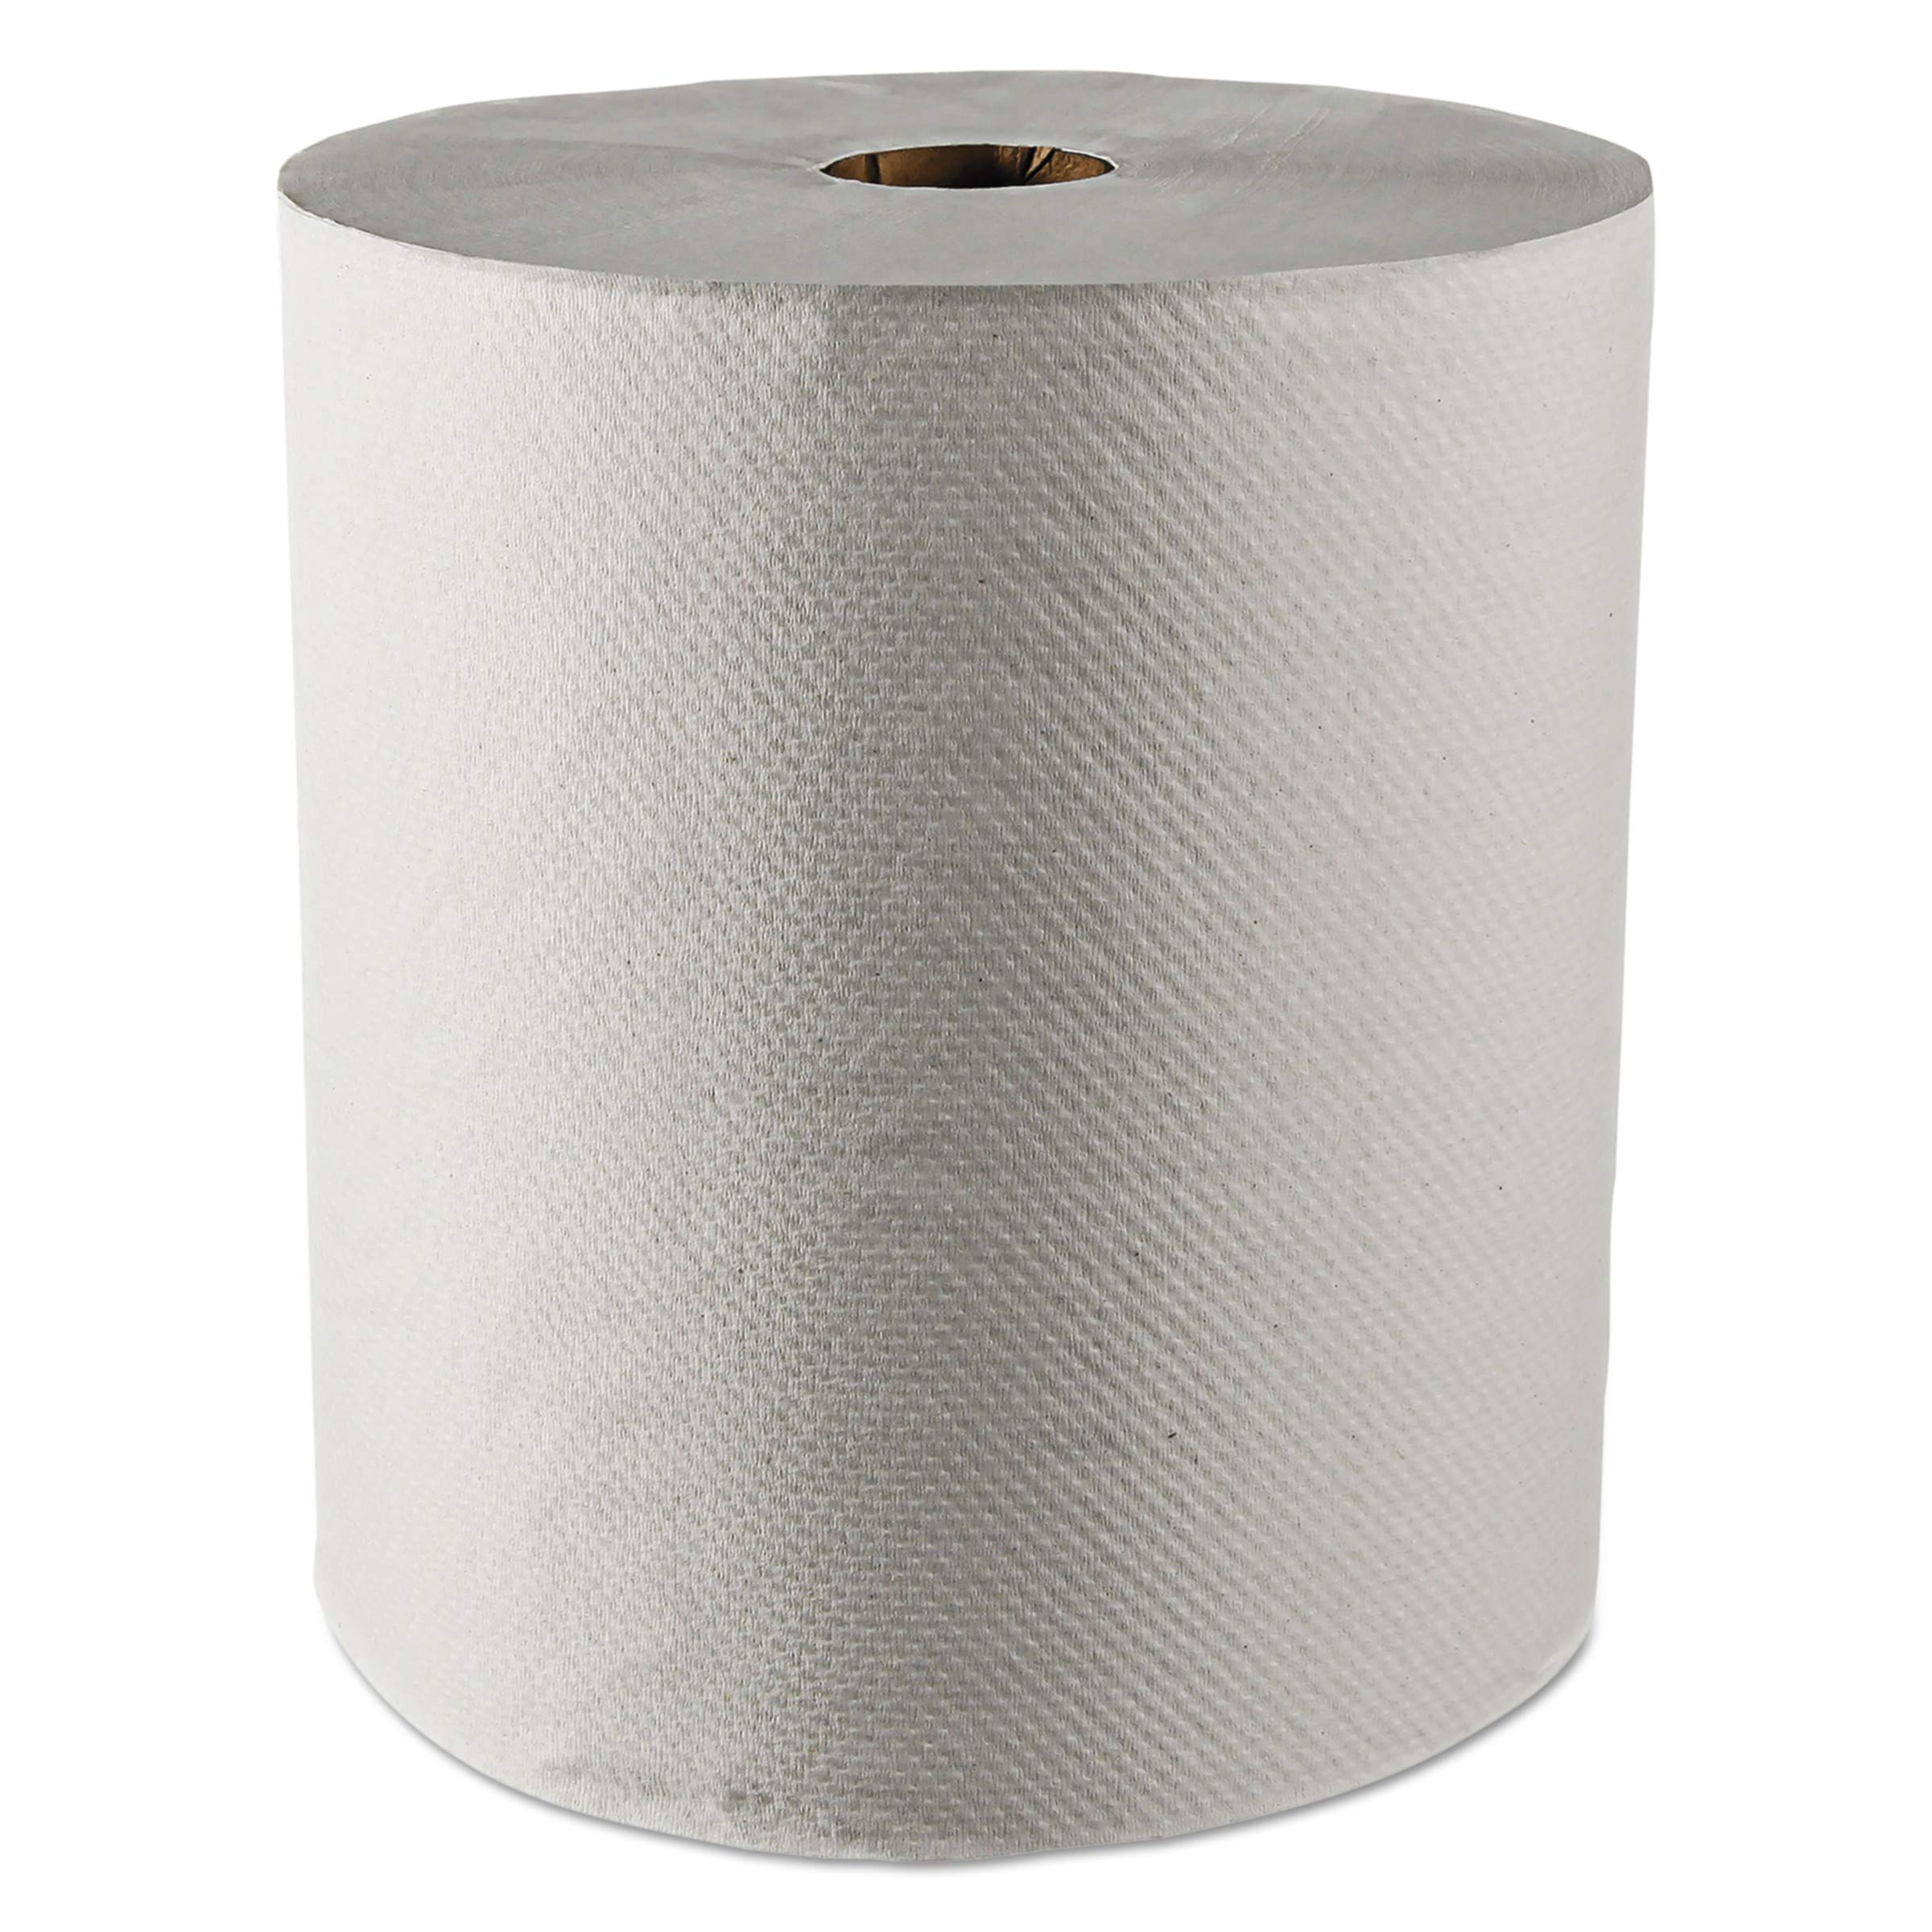 Scott 01052 Hard Roll Towels, 100% Recycled, 1.5'' Core, White, 8'' x 800ft (Case of 12 Rolls) by Scott (Image #1)